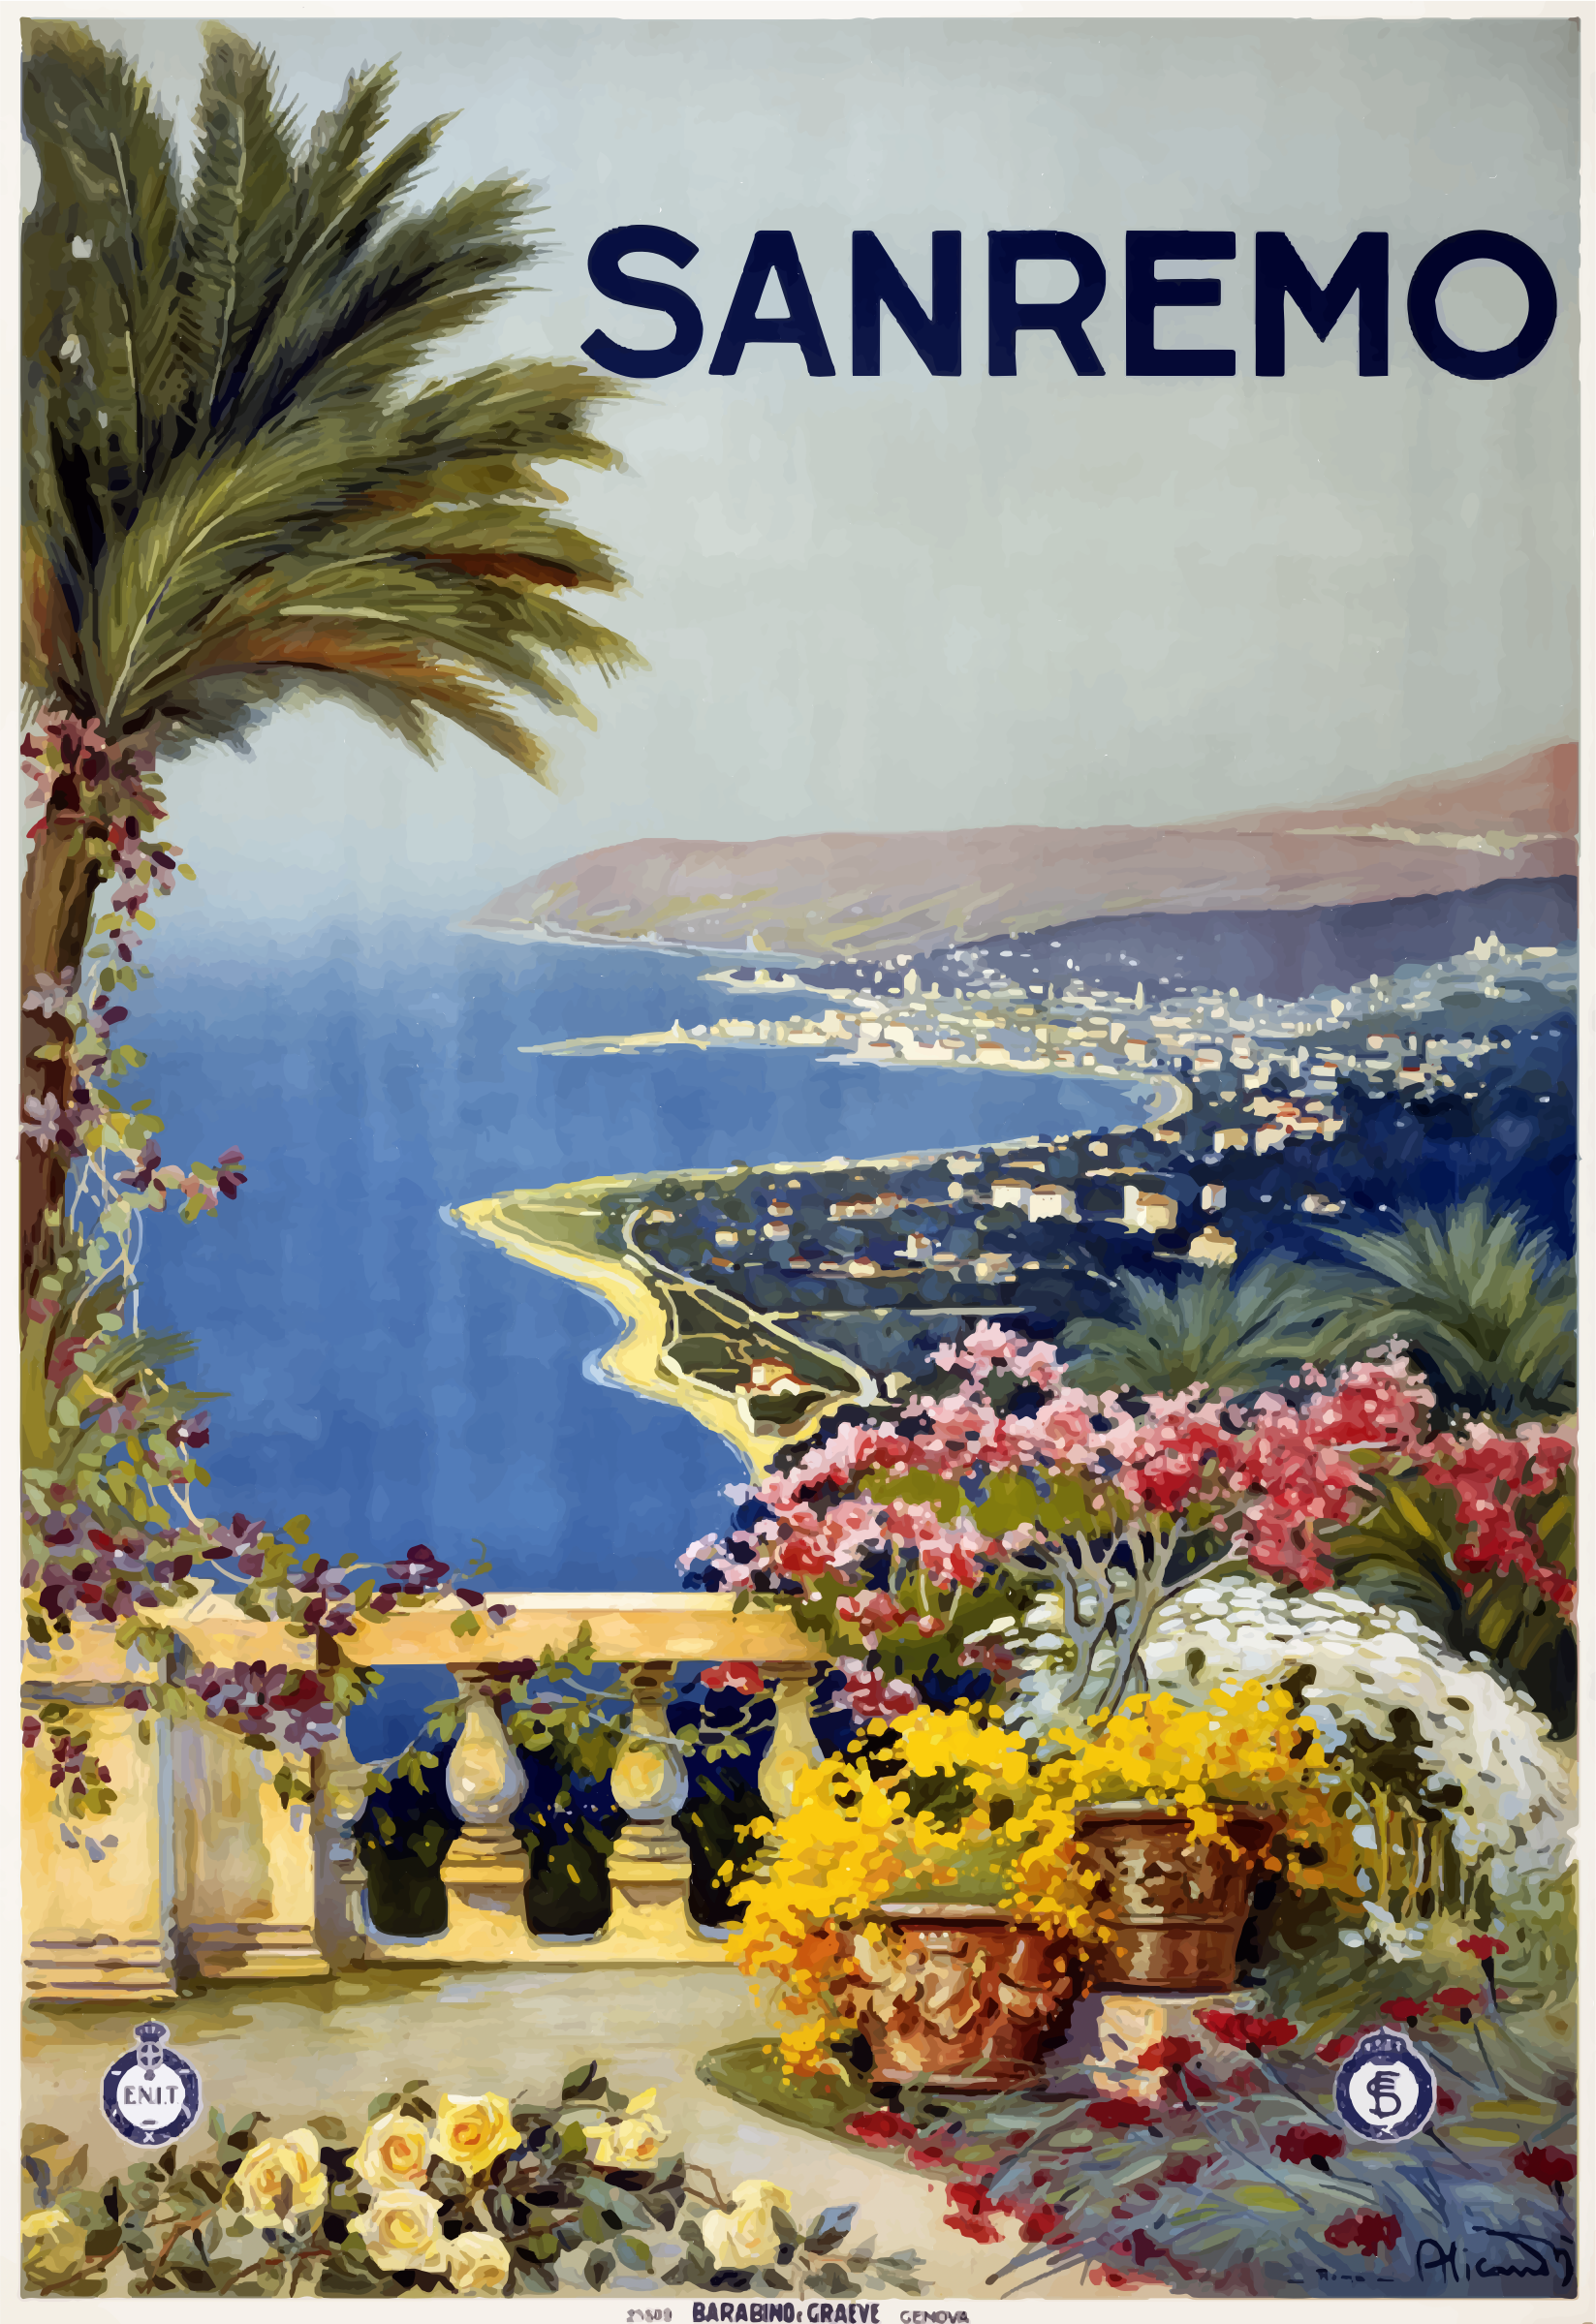 Vintage Travel Poster Sanremo Italy by GDJ